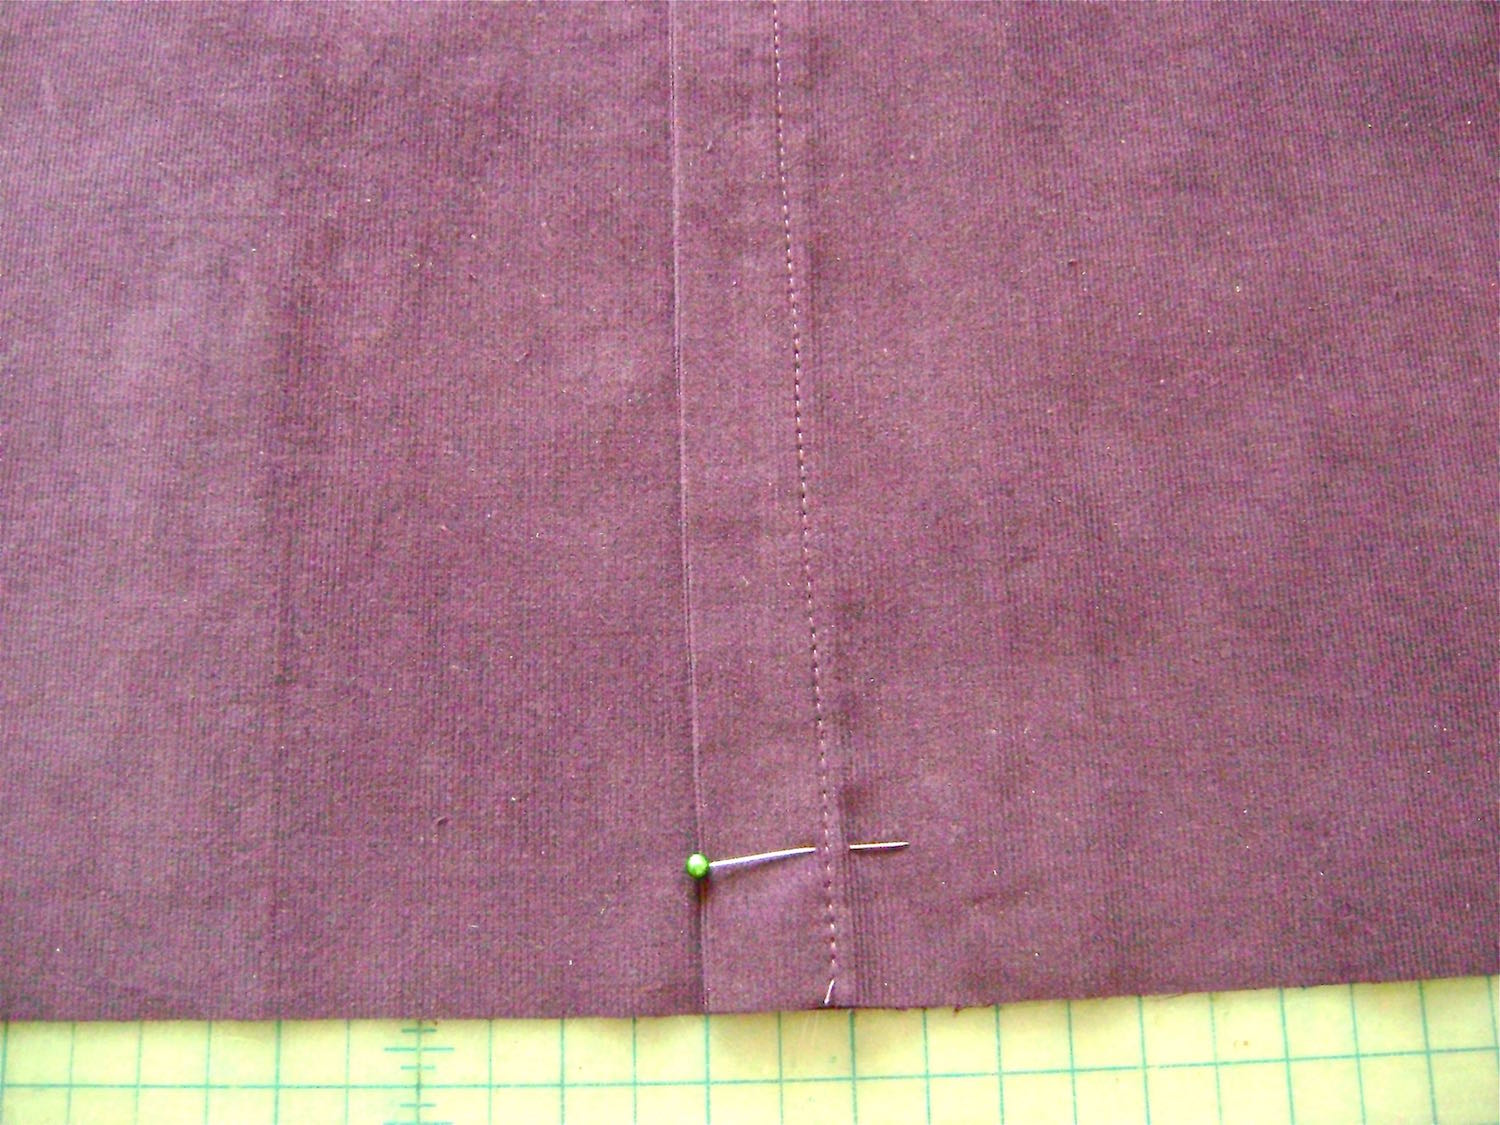 """step 17 - Overlap the two pieces so that they measure 17"""" across. There should be approximately 3"""" of overlap. The 8.5"""" piece should be on top. Stitch on the existing hemline one inch in from the raw edge on both ends of the opening."""